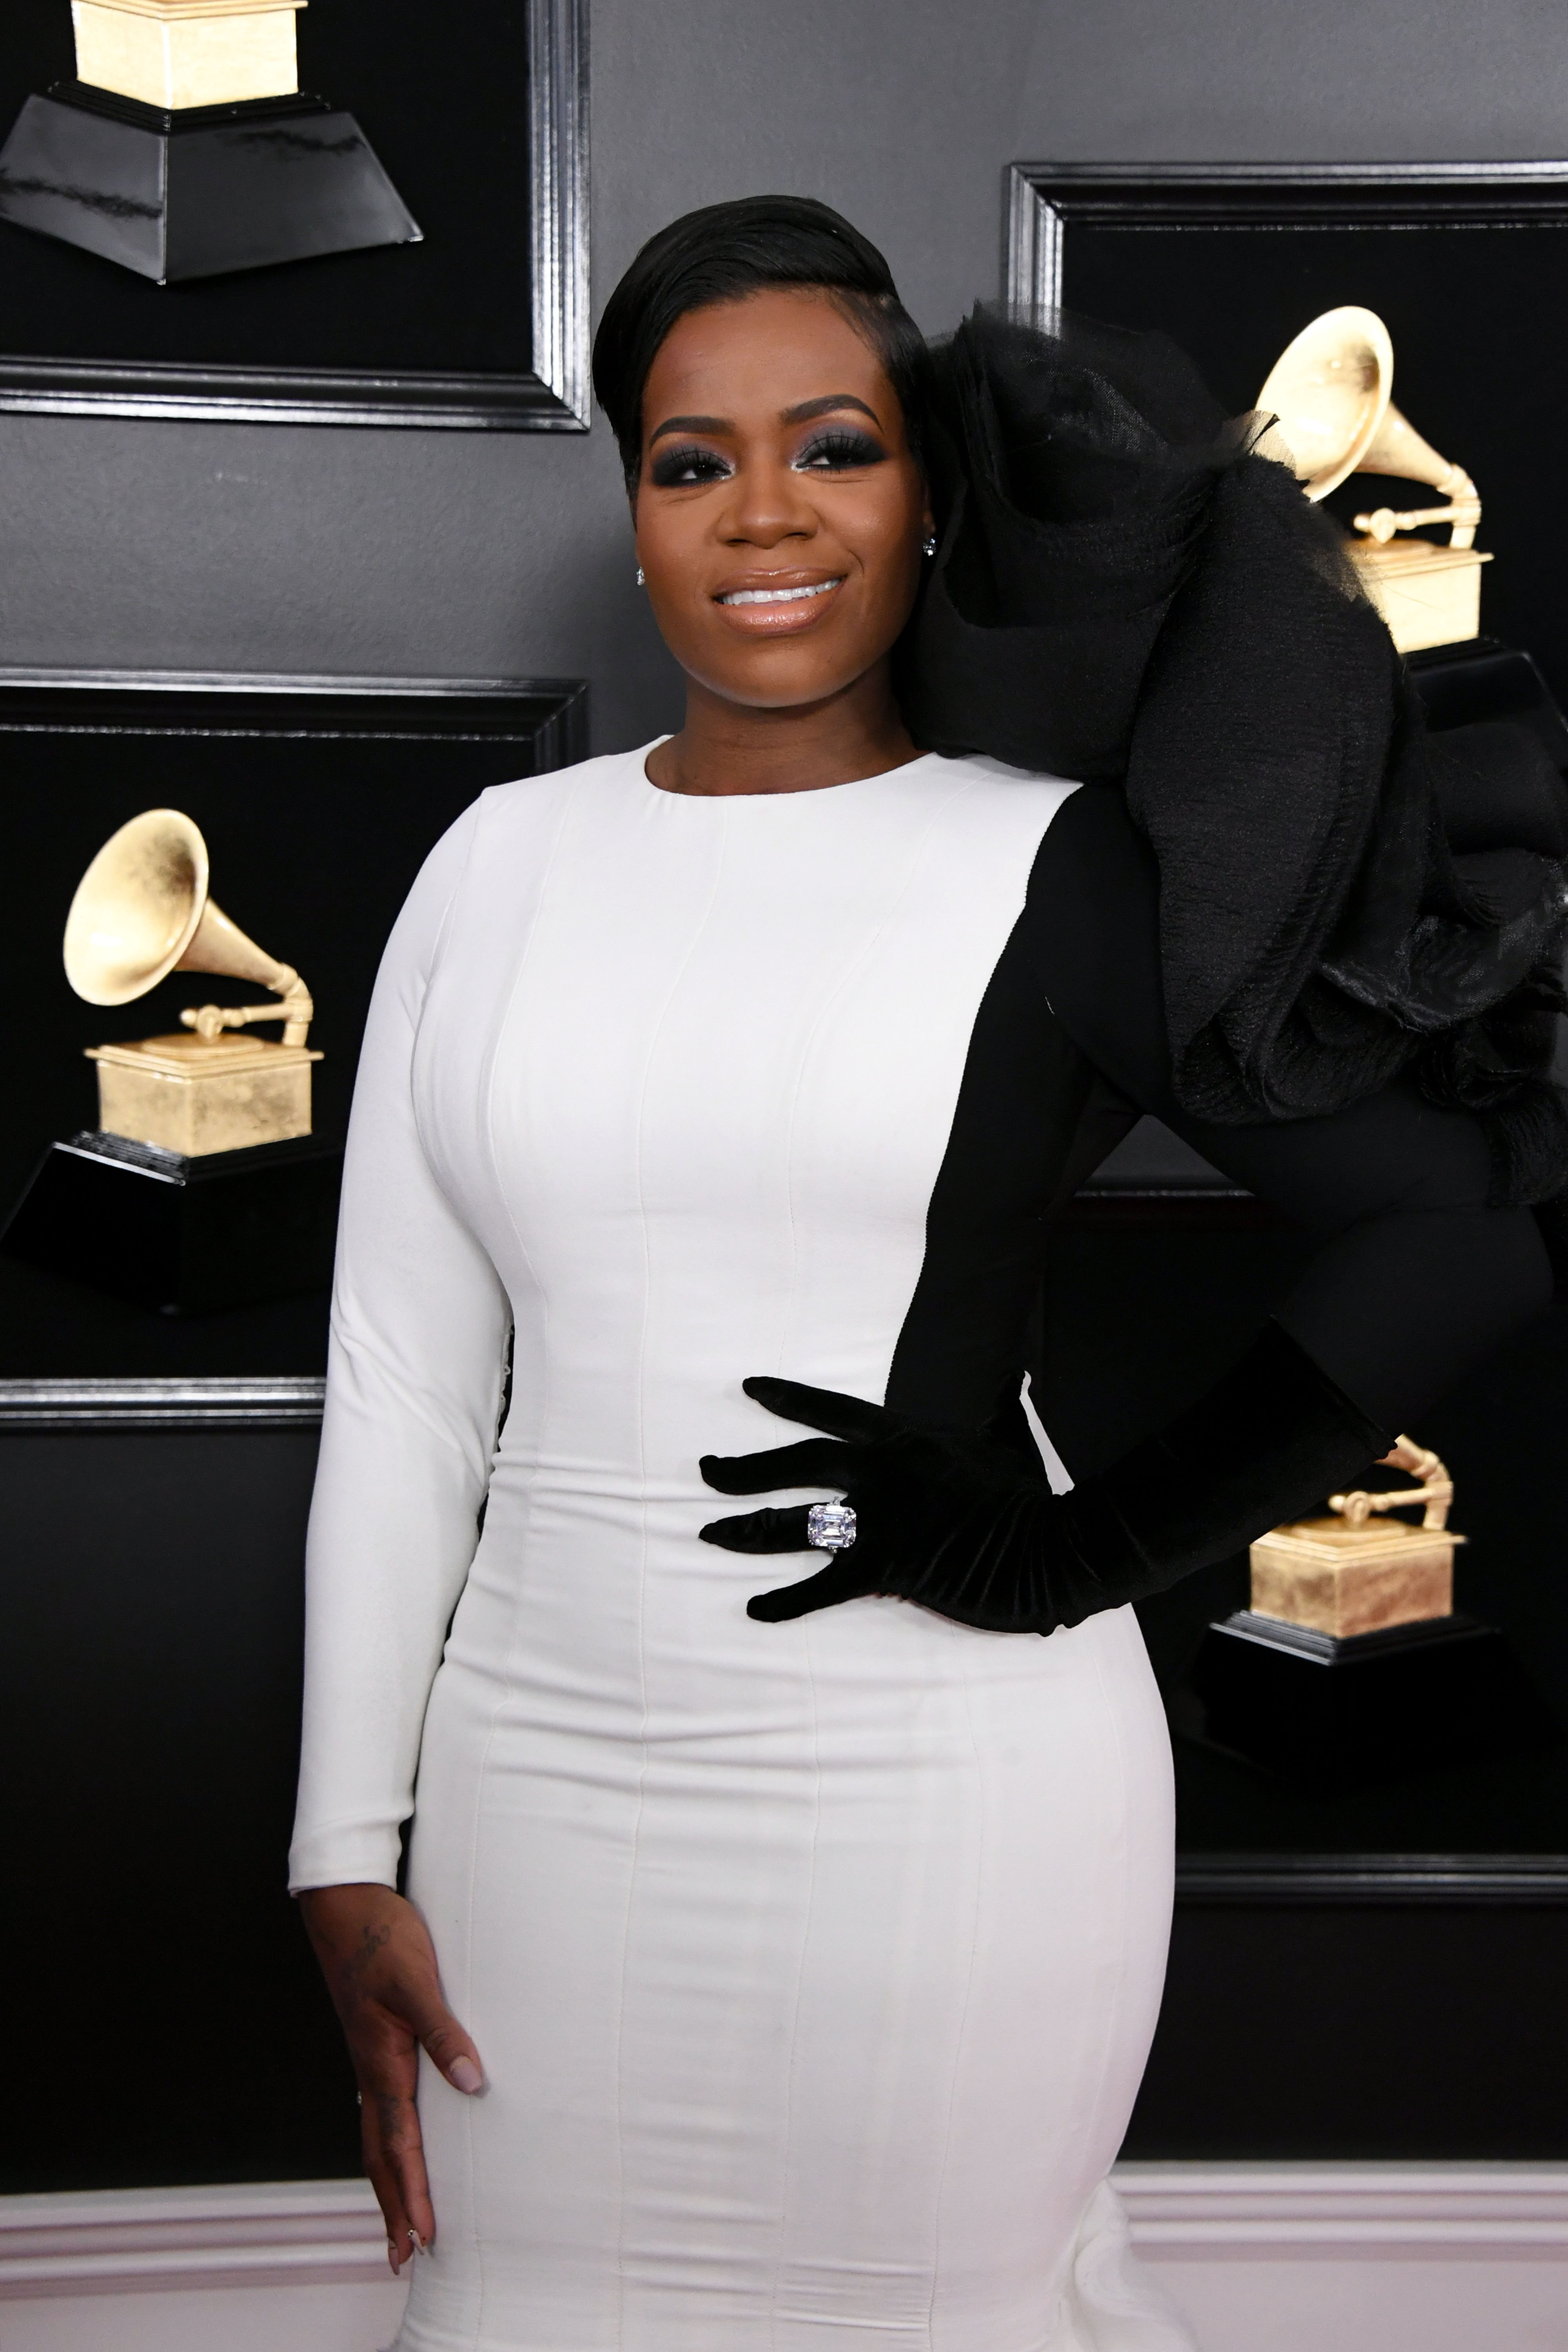 Fantasia Barrino pictured at the 61st Annual Grammy Awards on February 10, 2019 in Los Angeles, California. | Source: Getty Images